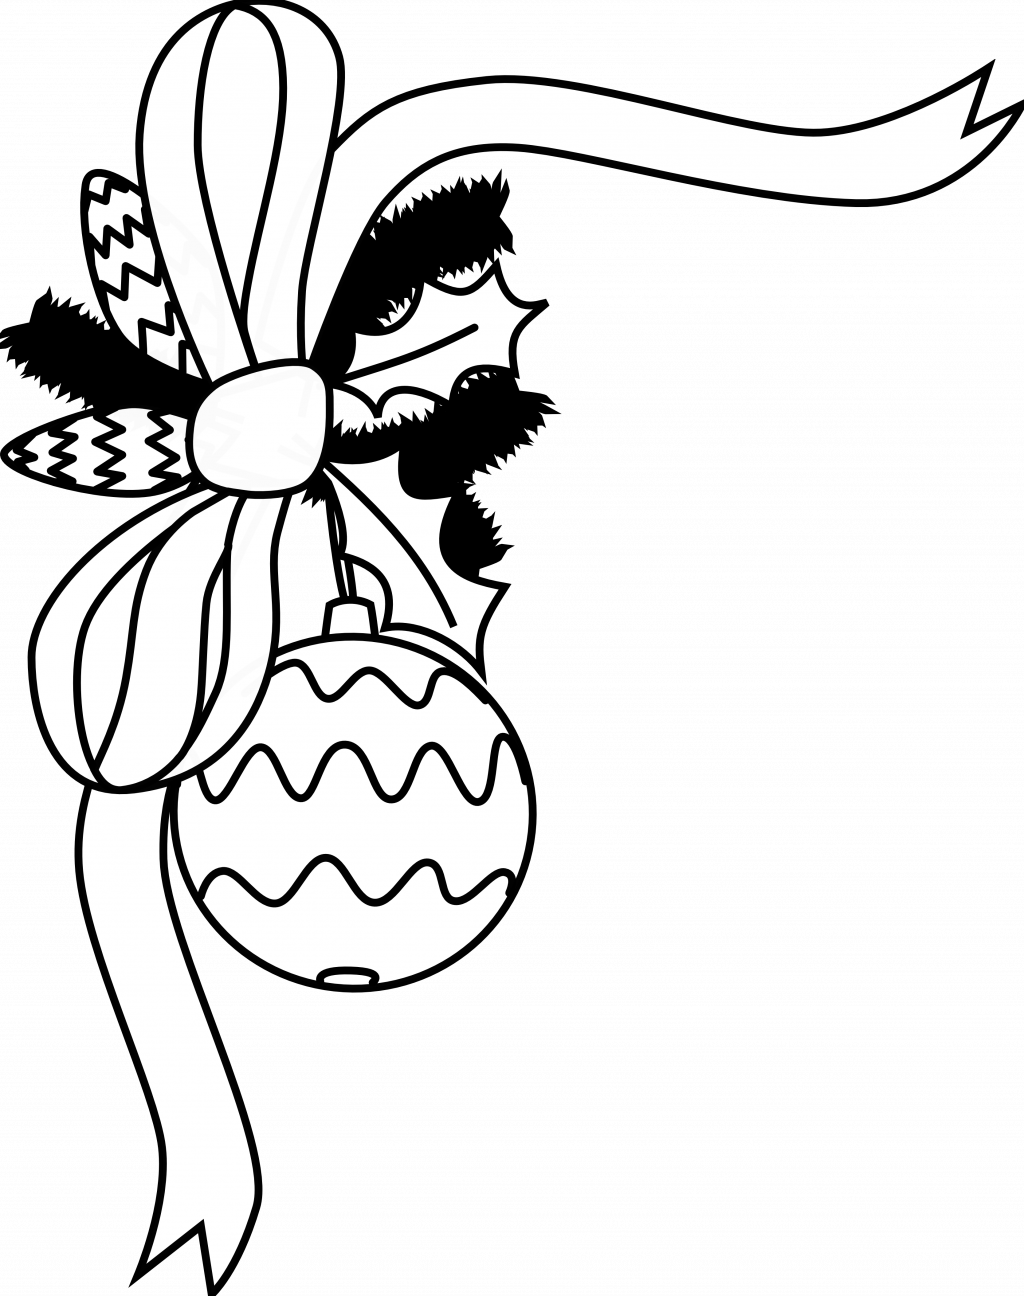 Thanksgiving clipart religious clip black and white download Christian Clipart Black And White   Free download best Christian ... clip black and white download